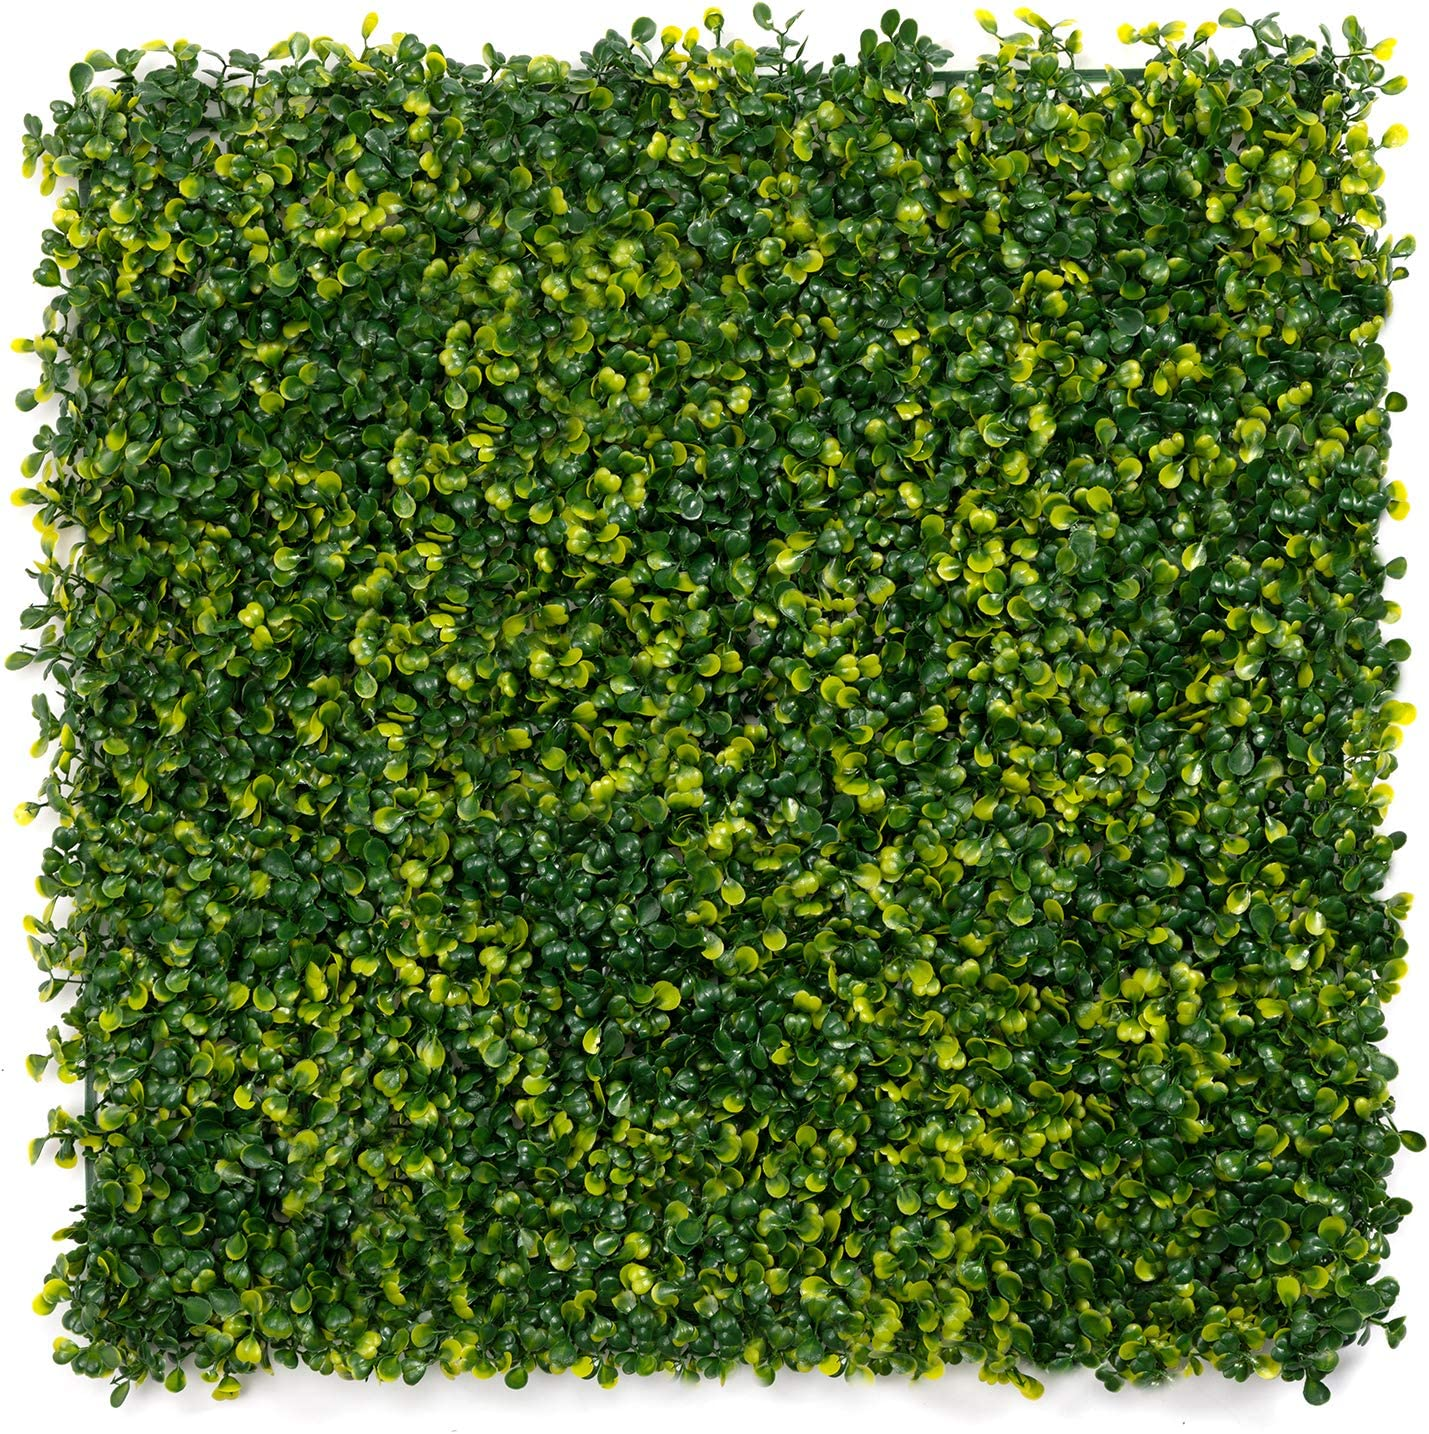 """DOEWORKS Artificial Boxwood Hedges Panels, 20"""" x 20"""" Faux Plant Ivy Fence Wall Cover, Outdoor Privacy Fence Screening Garden Decoration - 12 Pack"""